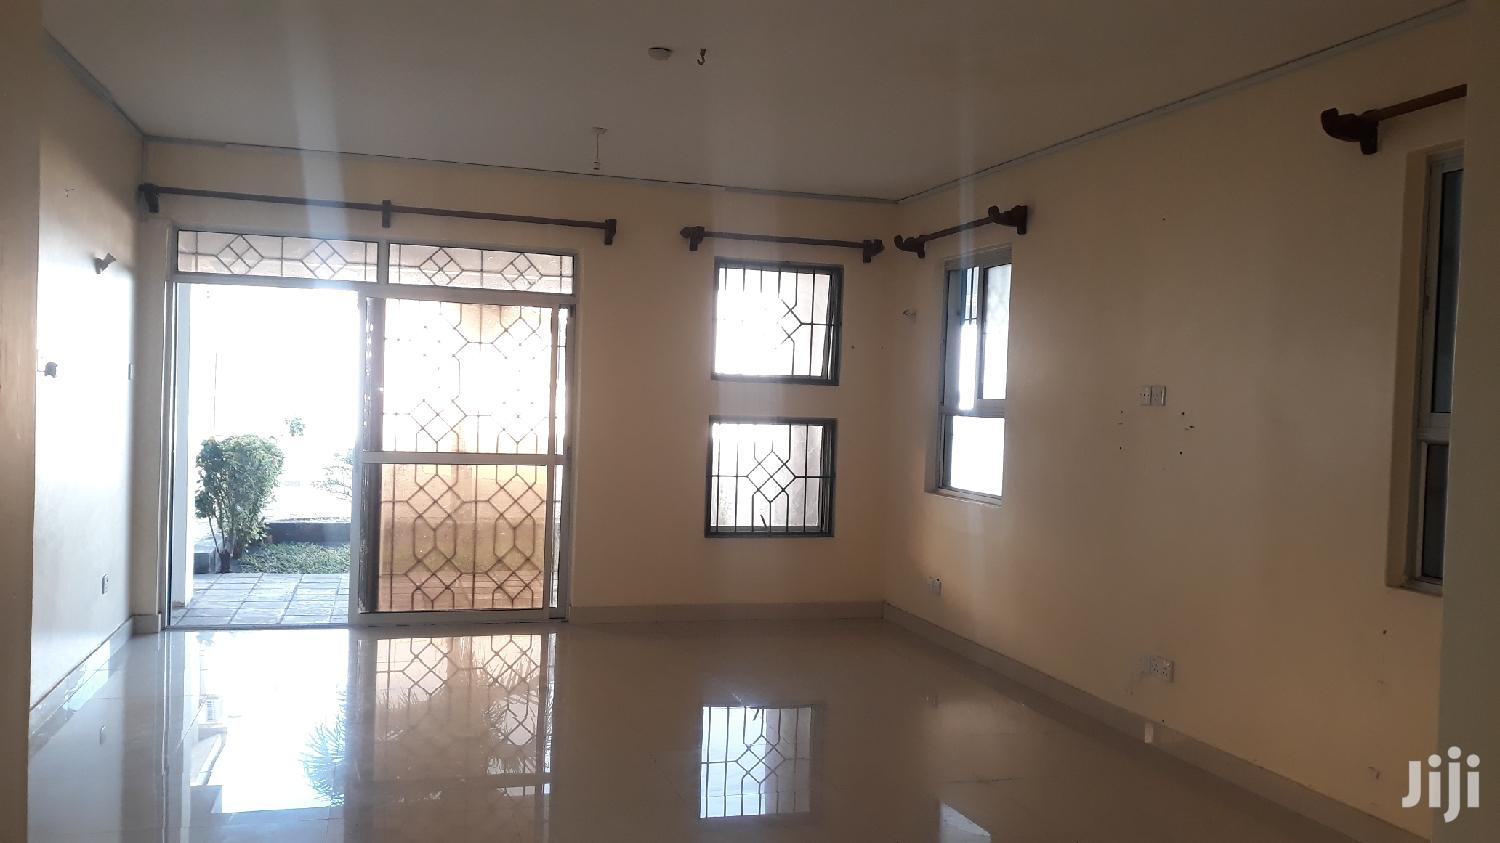 New Nyali// Charming 3 Bedroom Duplex All Ensuite With Pool | Houses & Apartments For Rent for sale in Nyali, Mombasa, Kenya